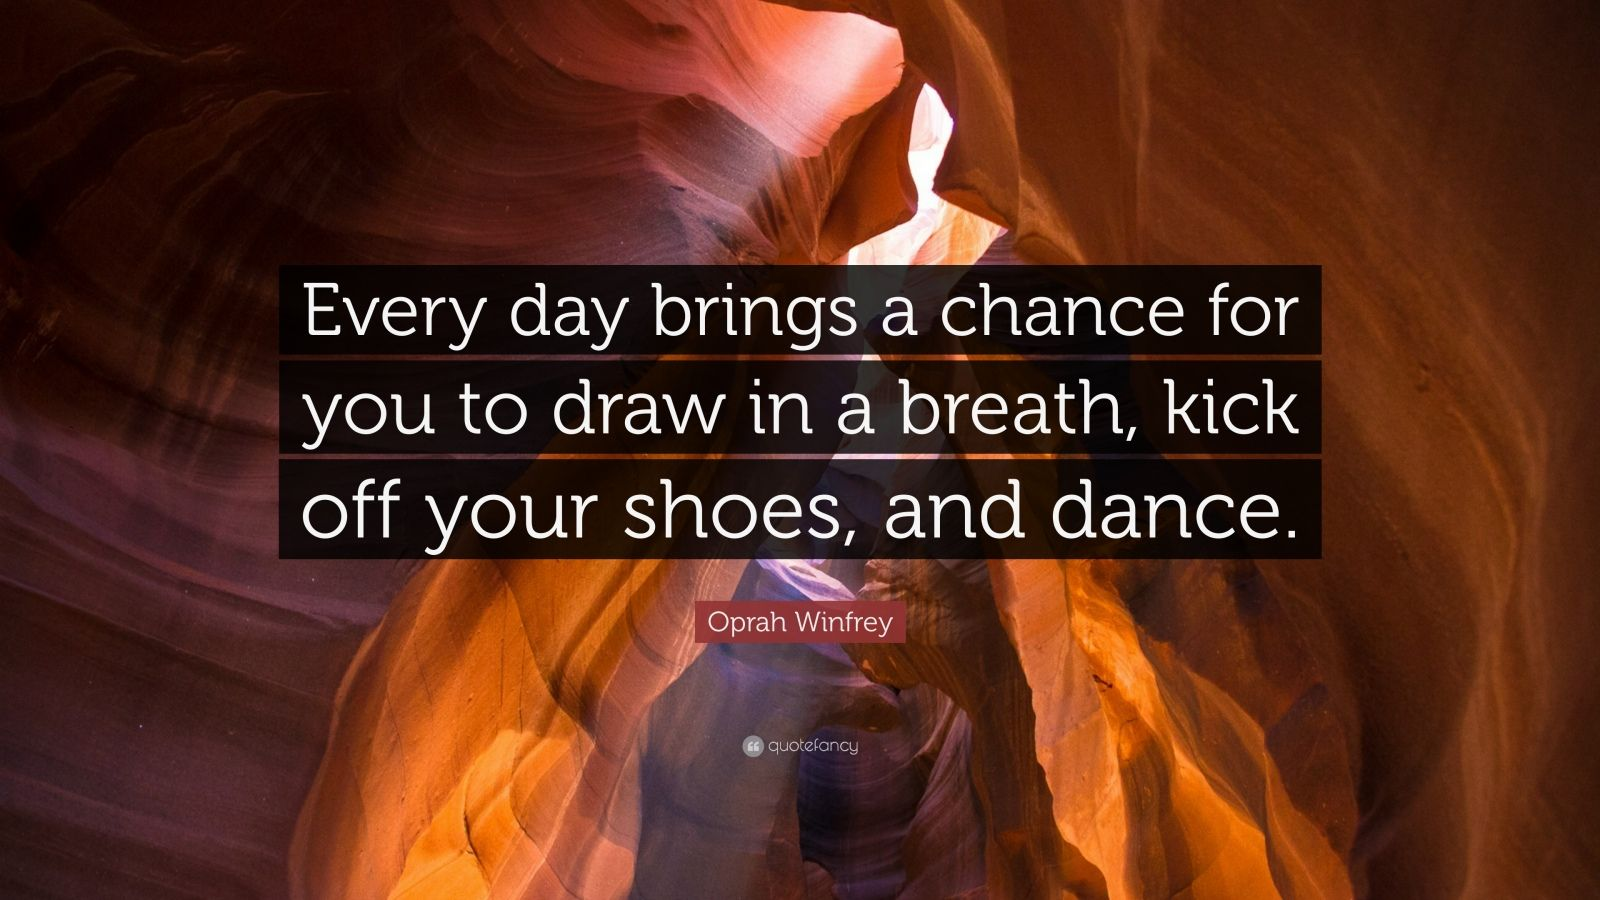 """Oprah Winfrey Quote: """"Every day brings a chance for you to draw in a breath, kick off your shoes, and dance."""""""